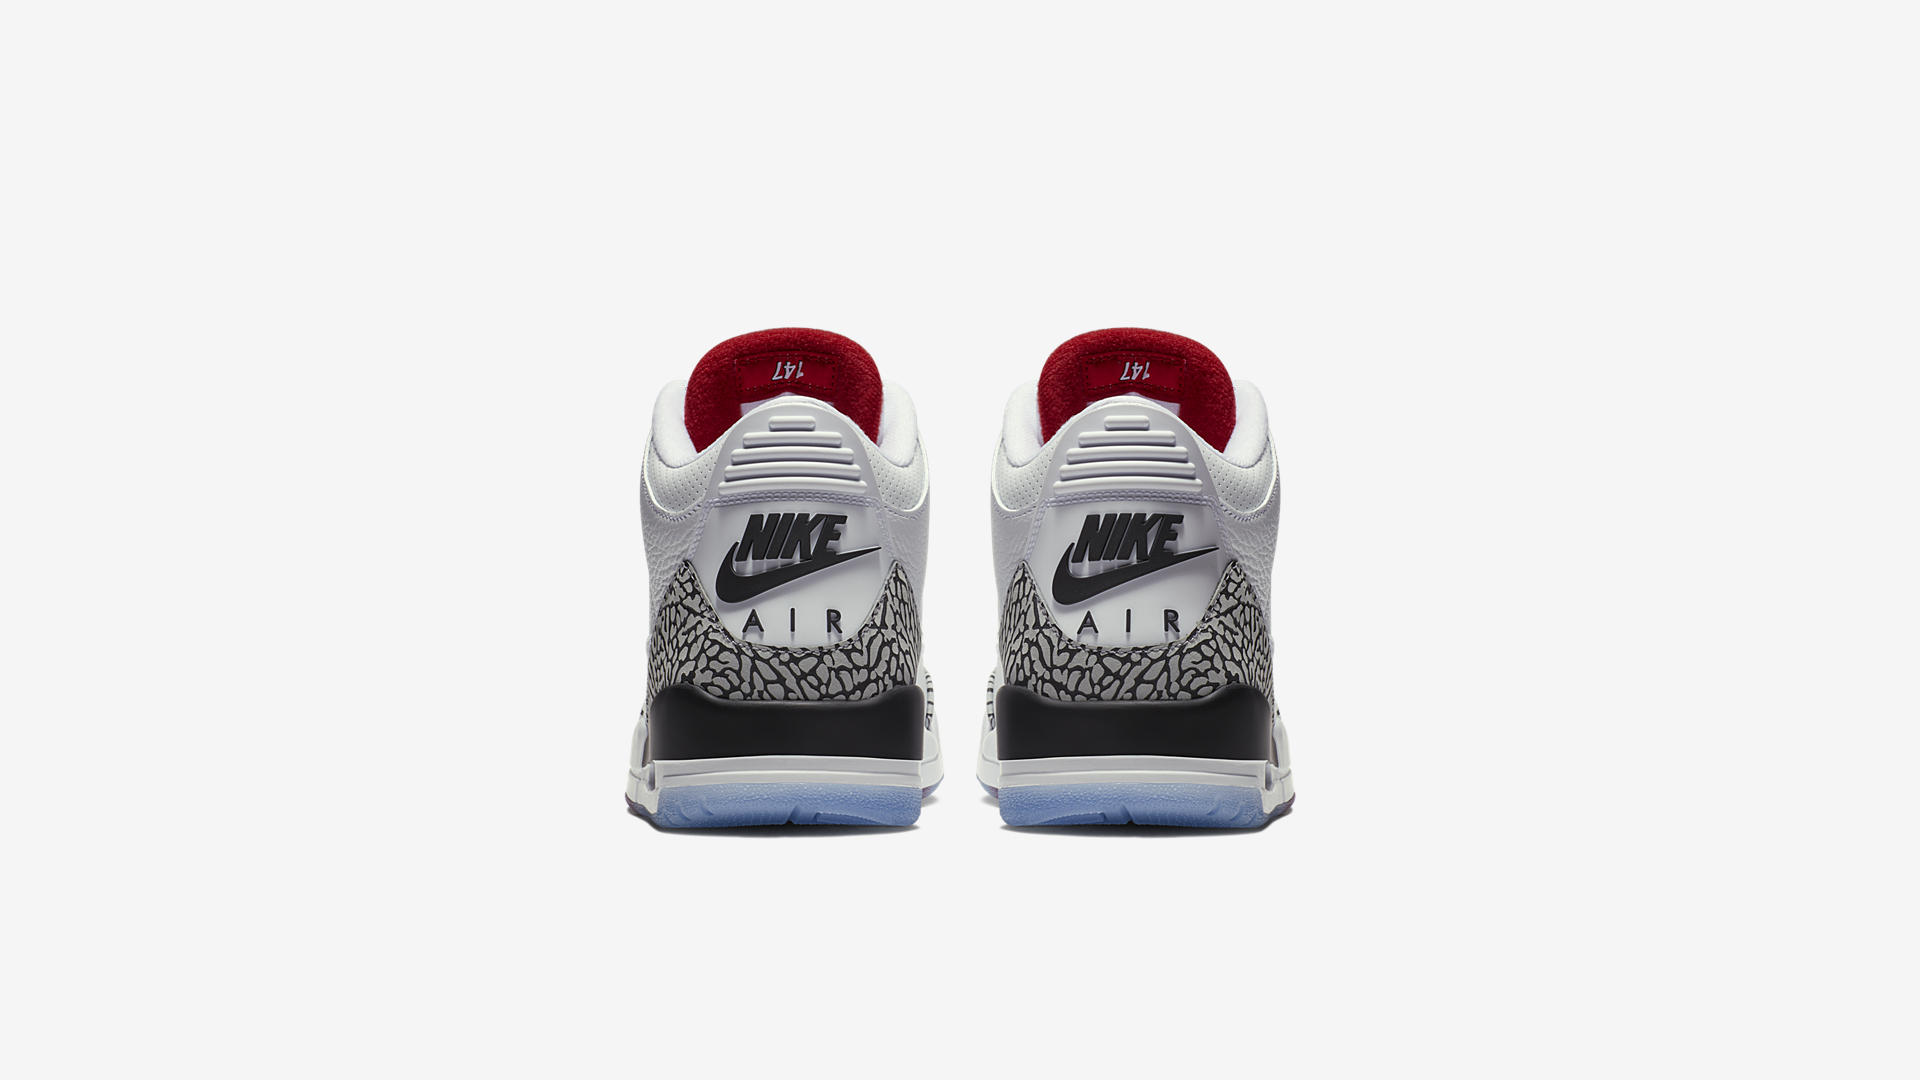 923096 101 Air Jordan 3 Free Throw Line 2